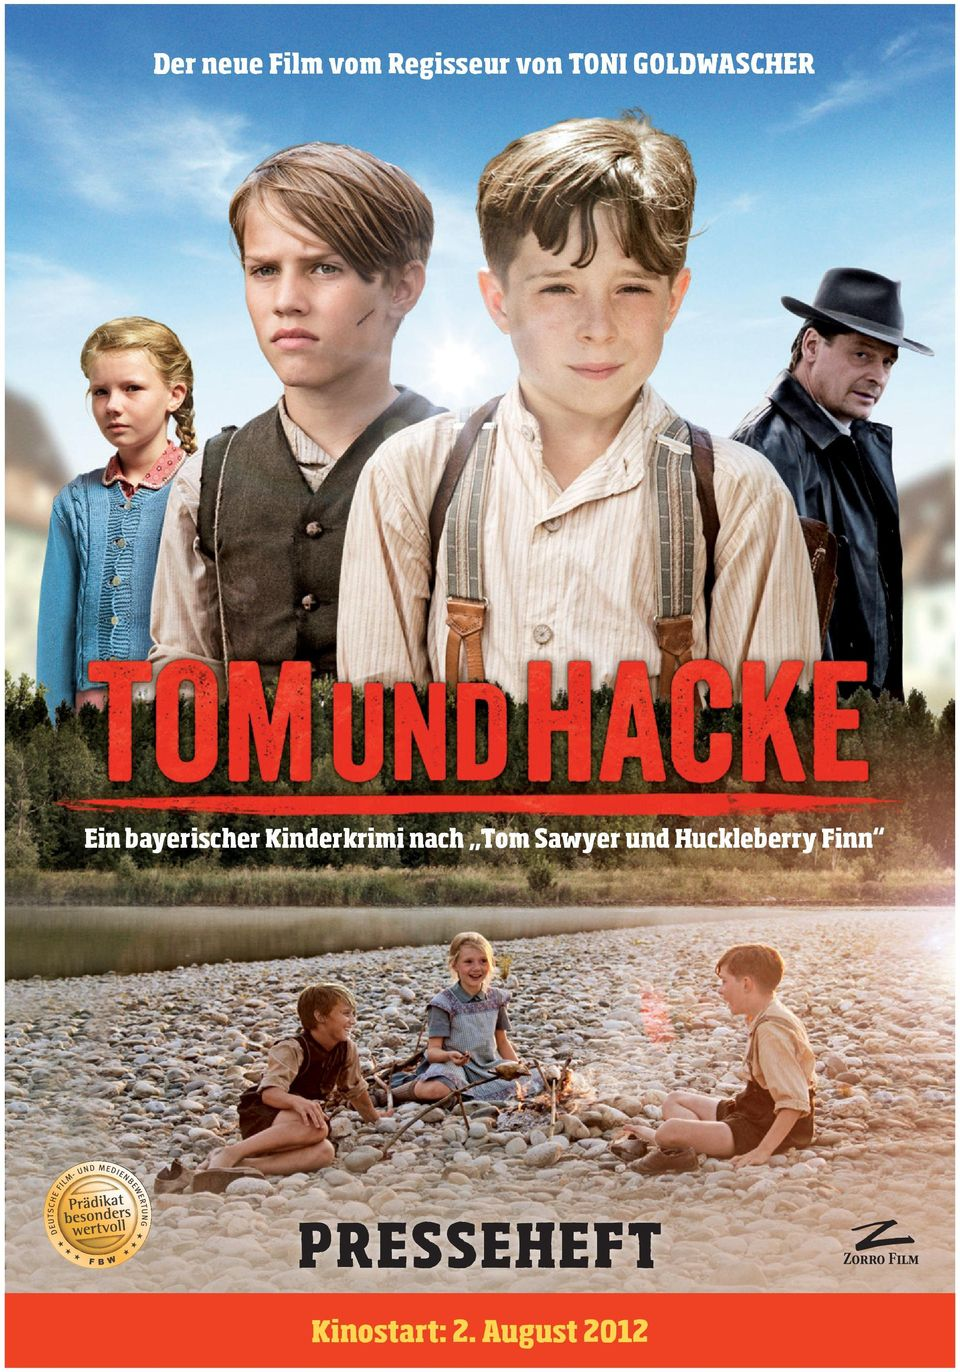 Kinderkrimi nach Tom Sawyer und